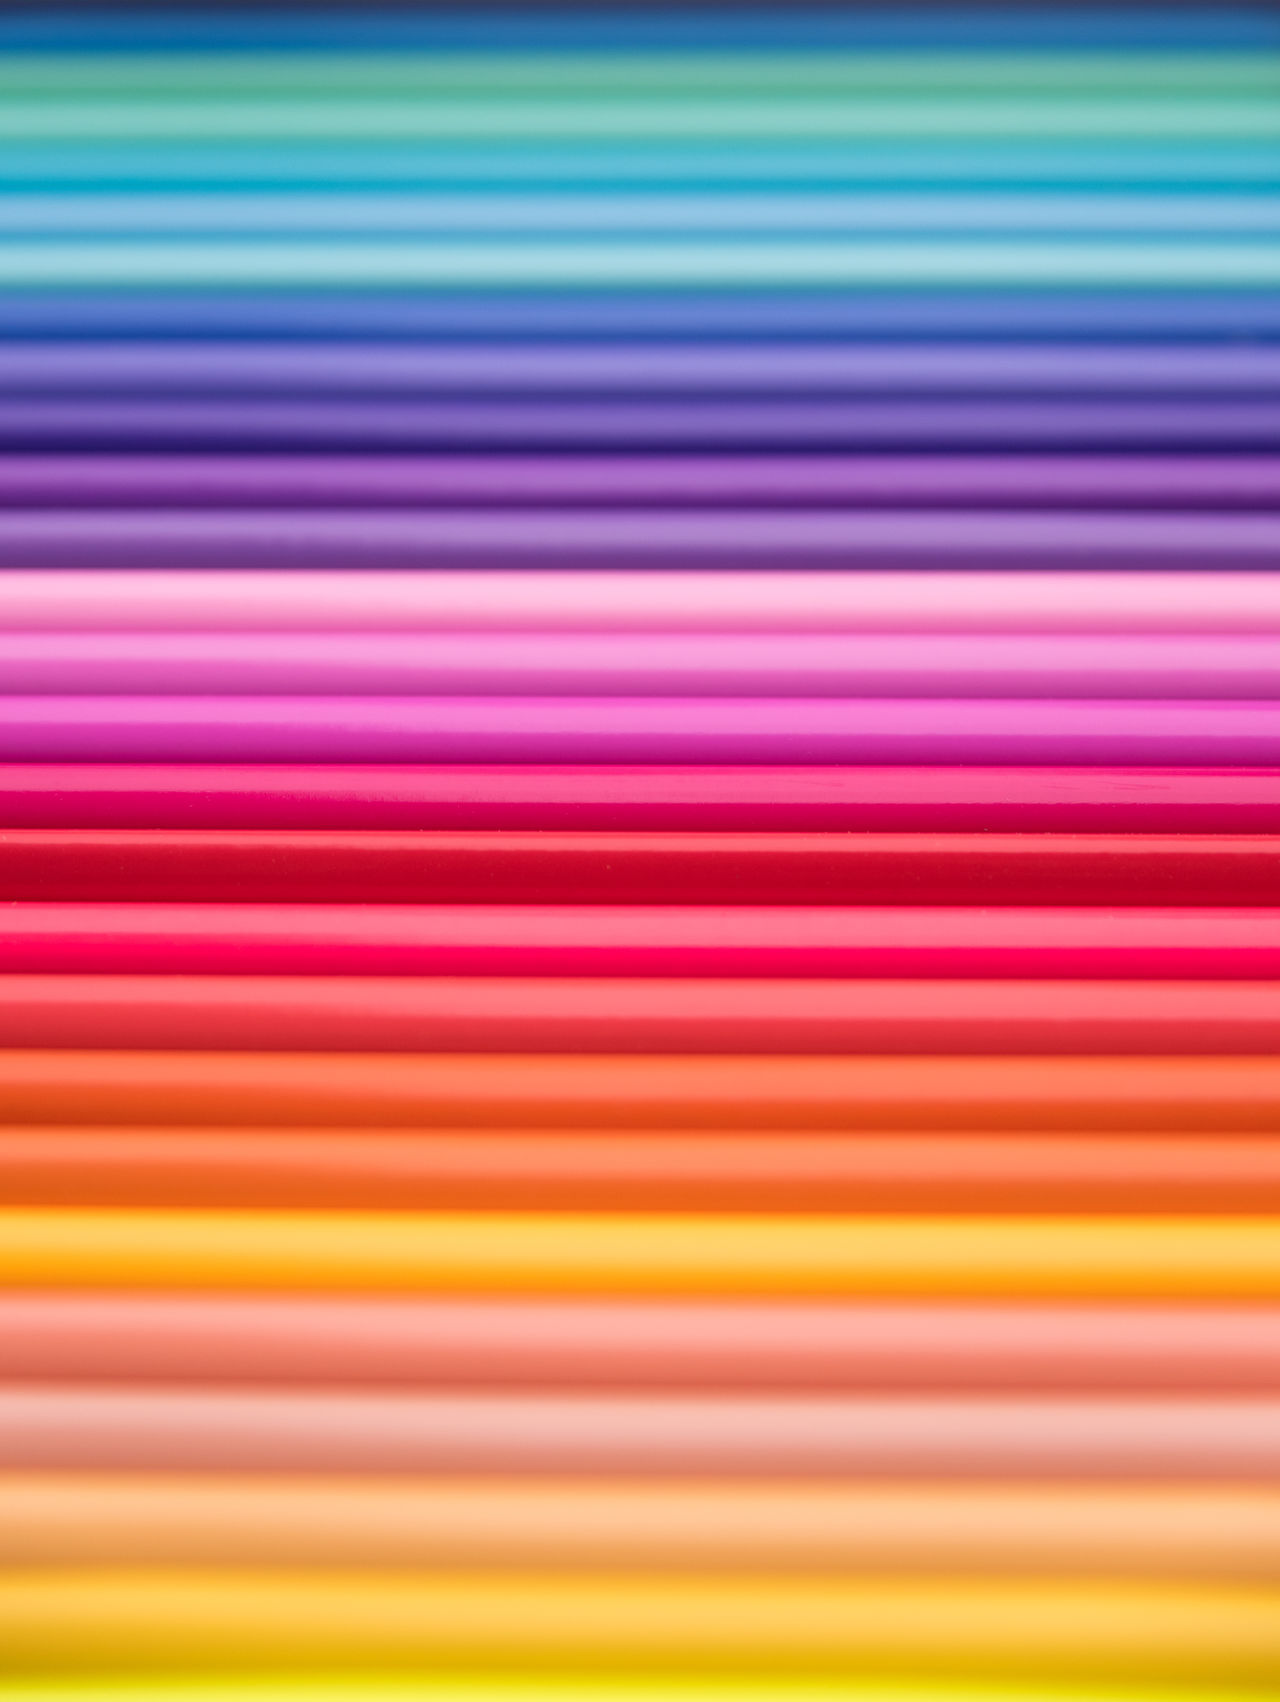 Colored Pencil Sets Abstract Art Backgrounds Color Chart Colorful Creativity Drawing Drawing Tools Multi Colored Pattern Pencils Prismacolor Rainbow Colors Selective Focus Striped Pattern